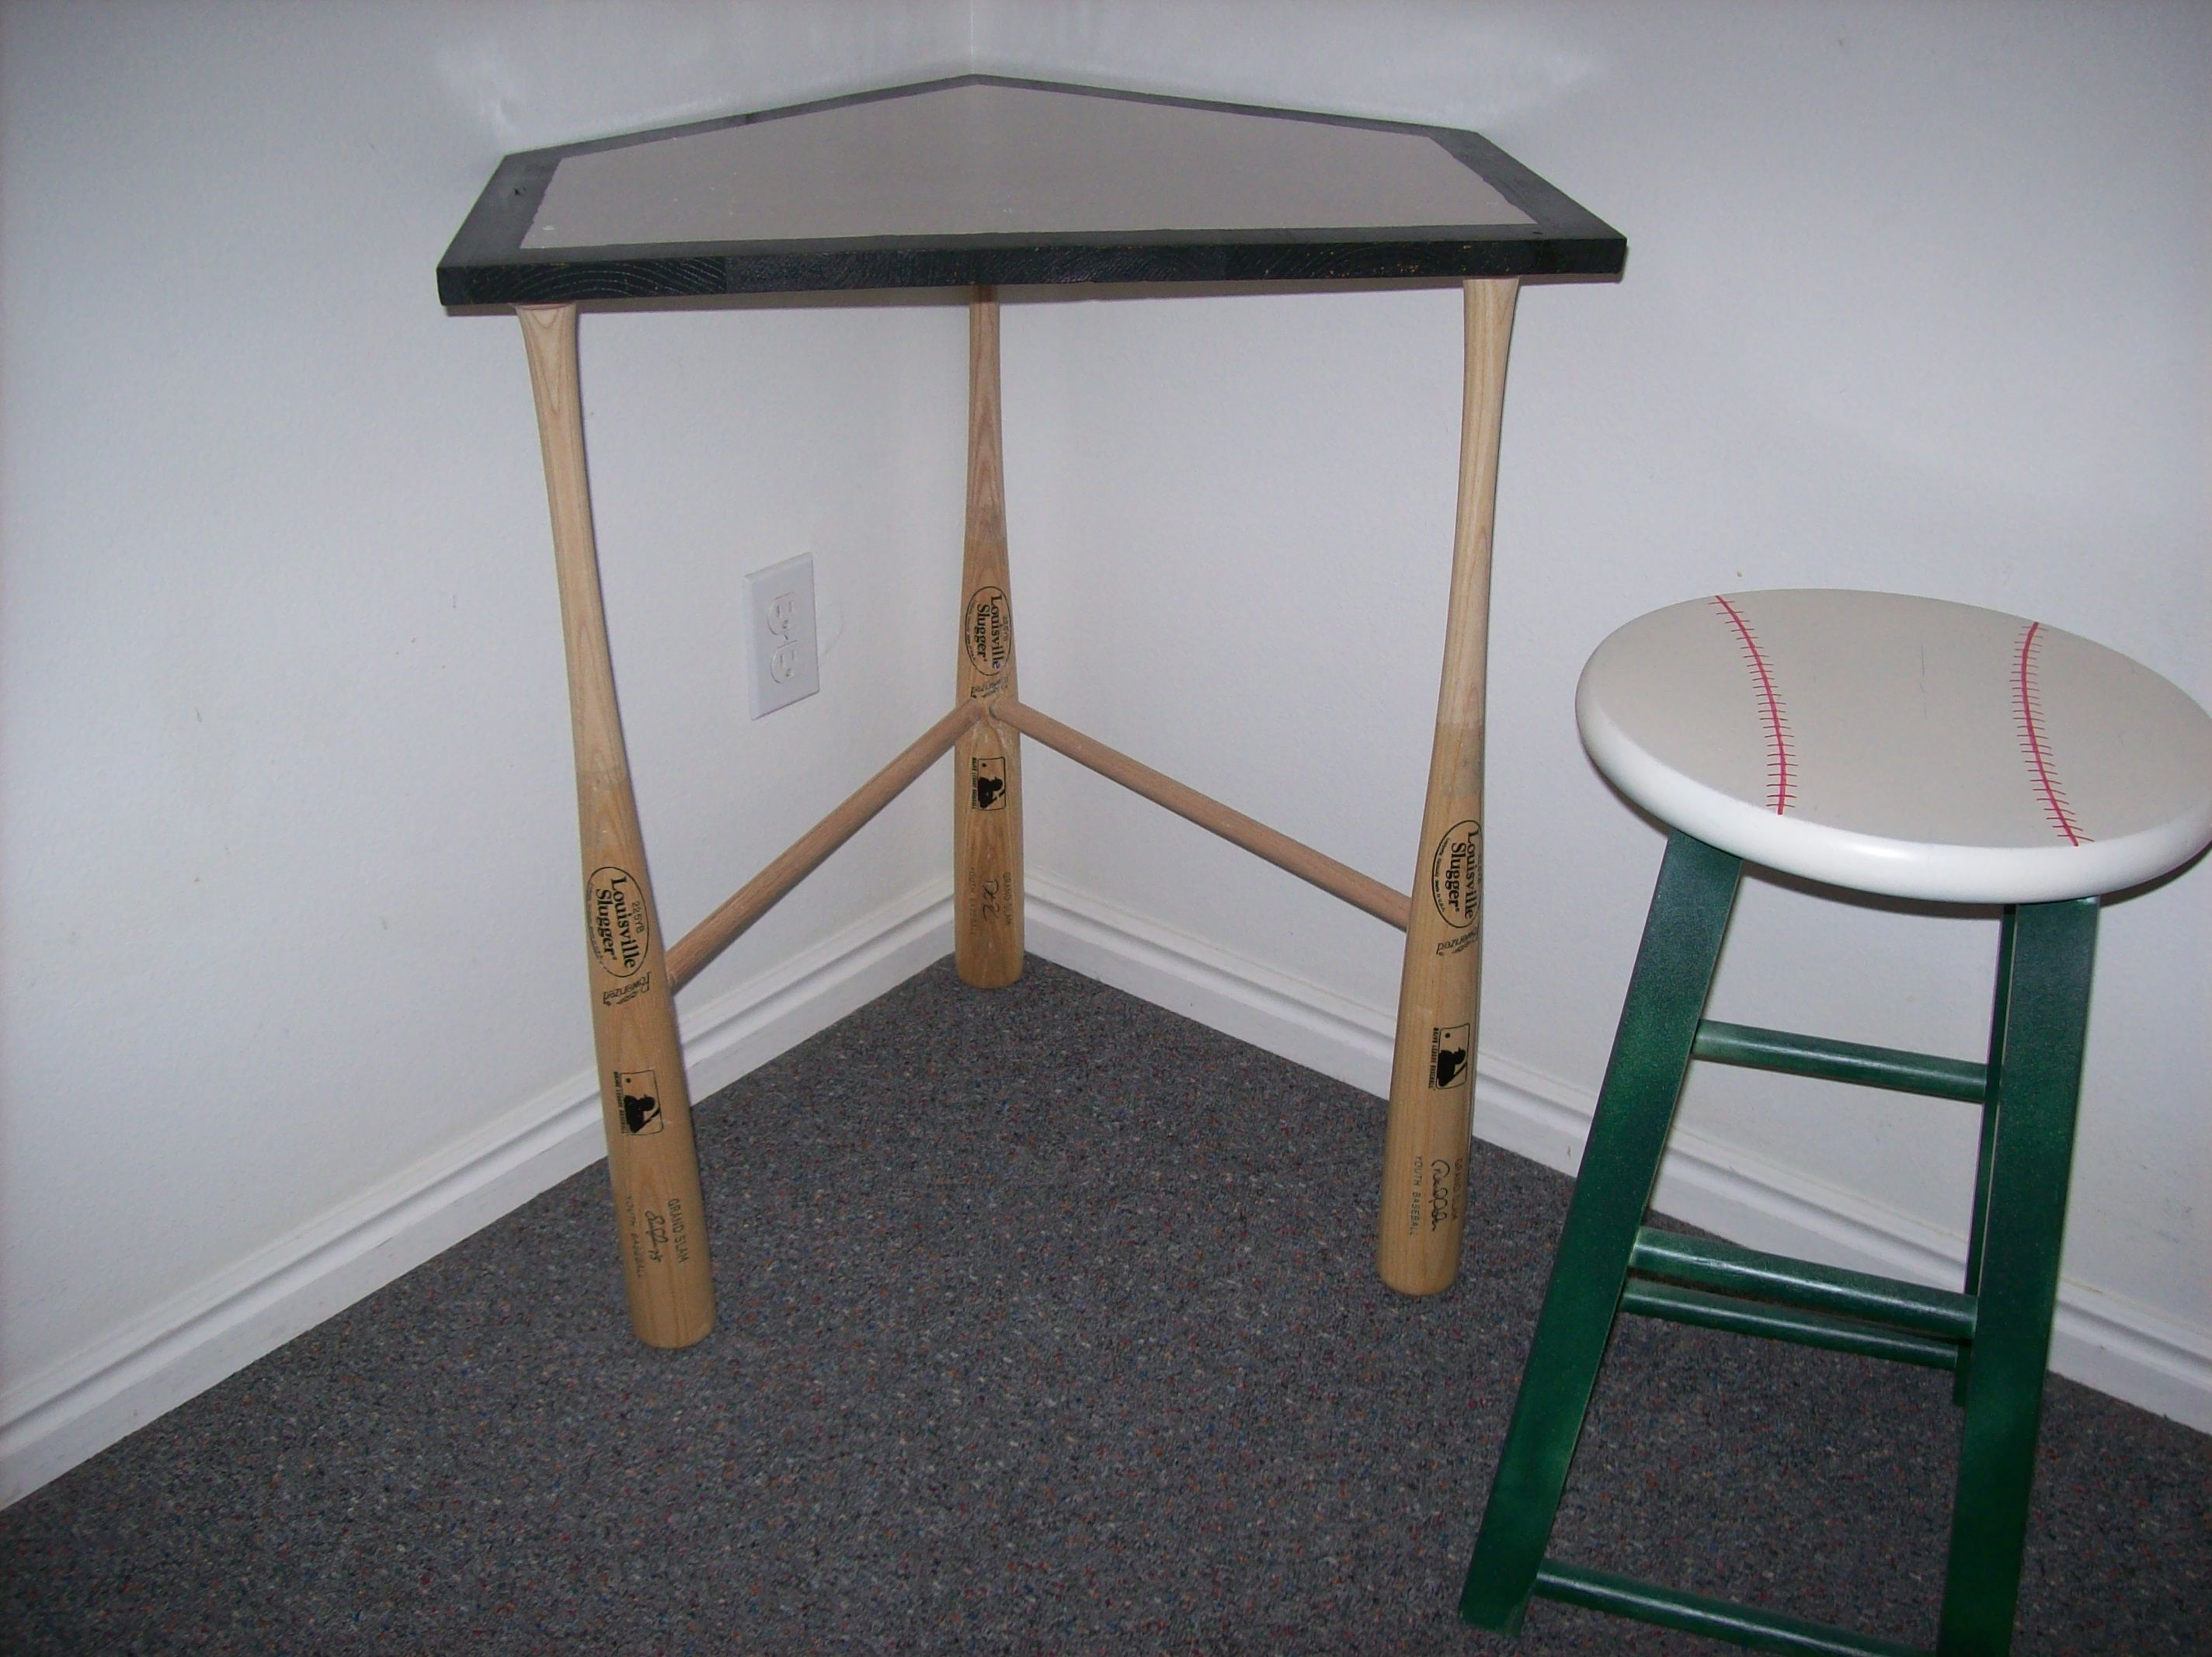 Homeplate Desk With Baseball Bats For Legs And A Stool Seat Painted As